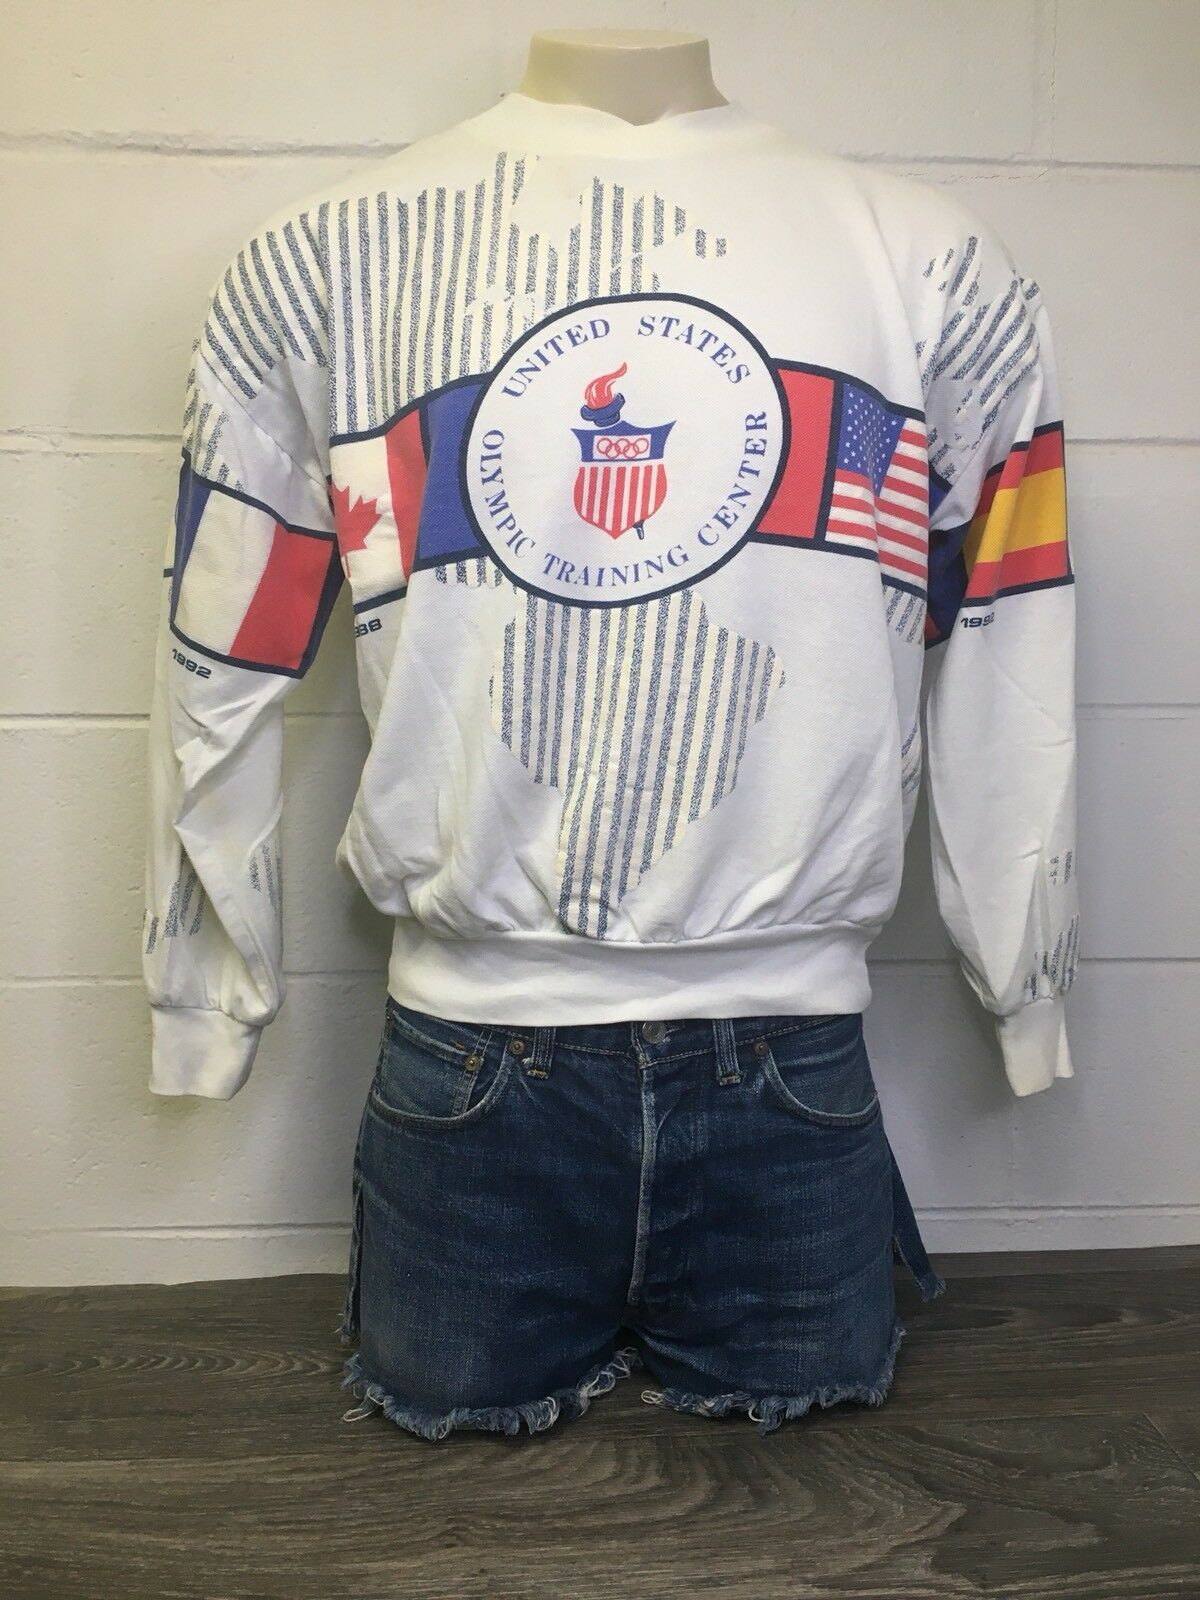 Olympic Training Center Sweatshirt VTG 90s Games USA All Over Flags Sweater L